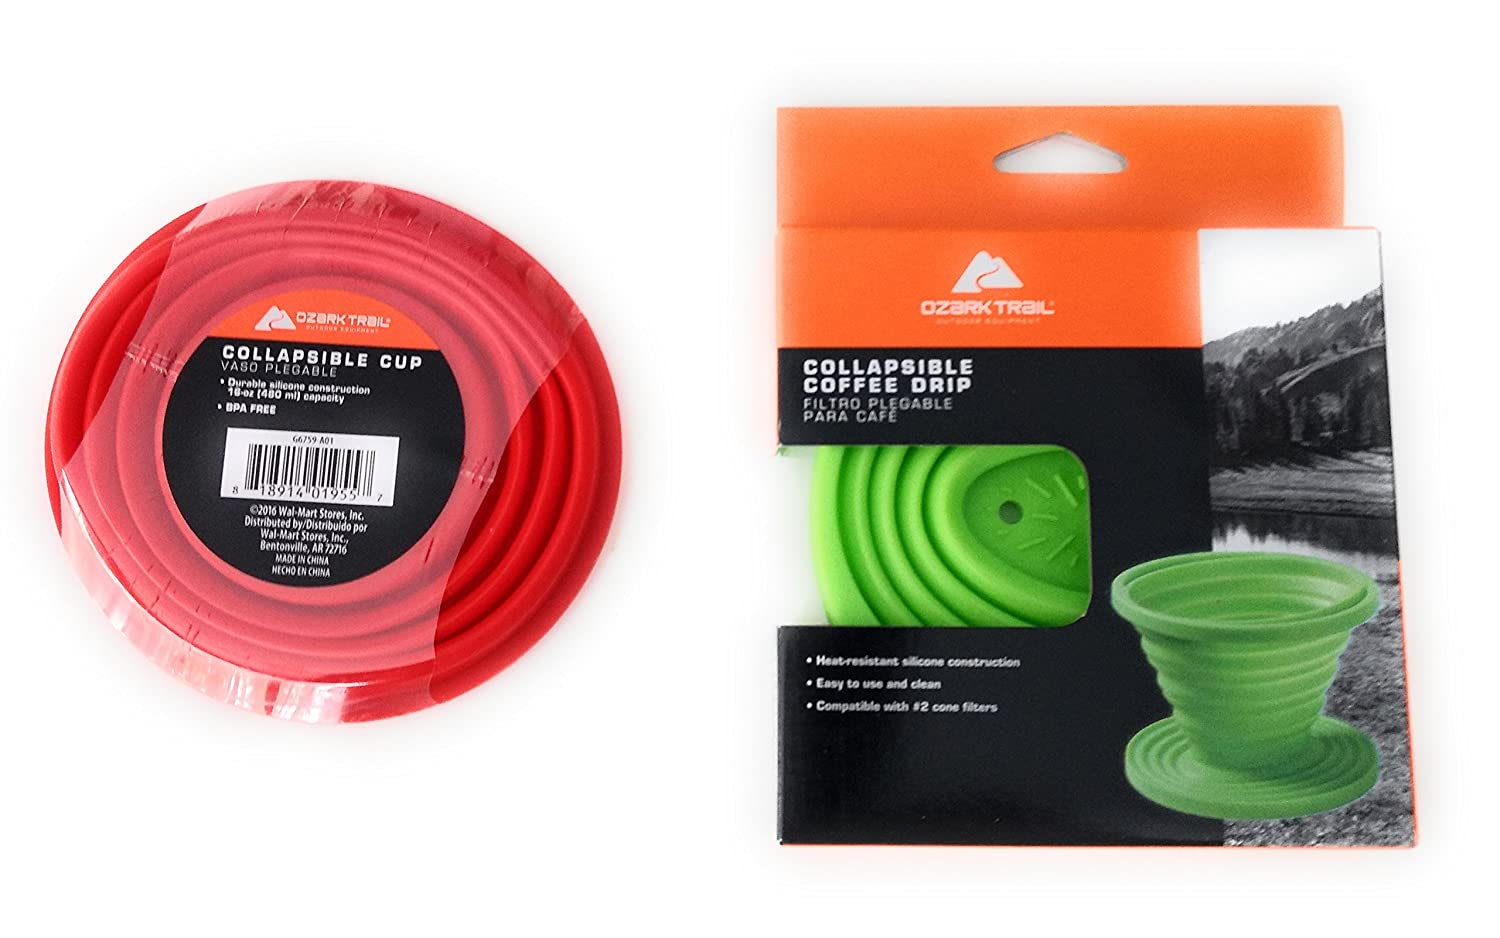 Collapsible Coffee Drip and Collapsible Cup